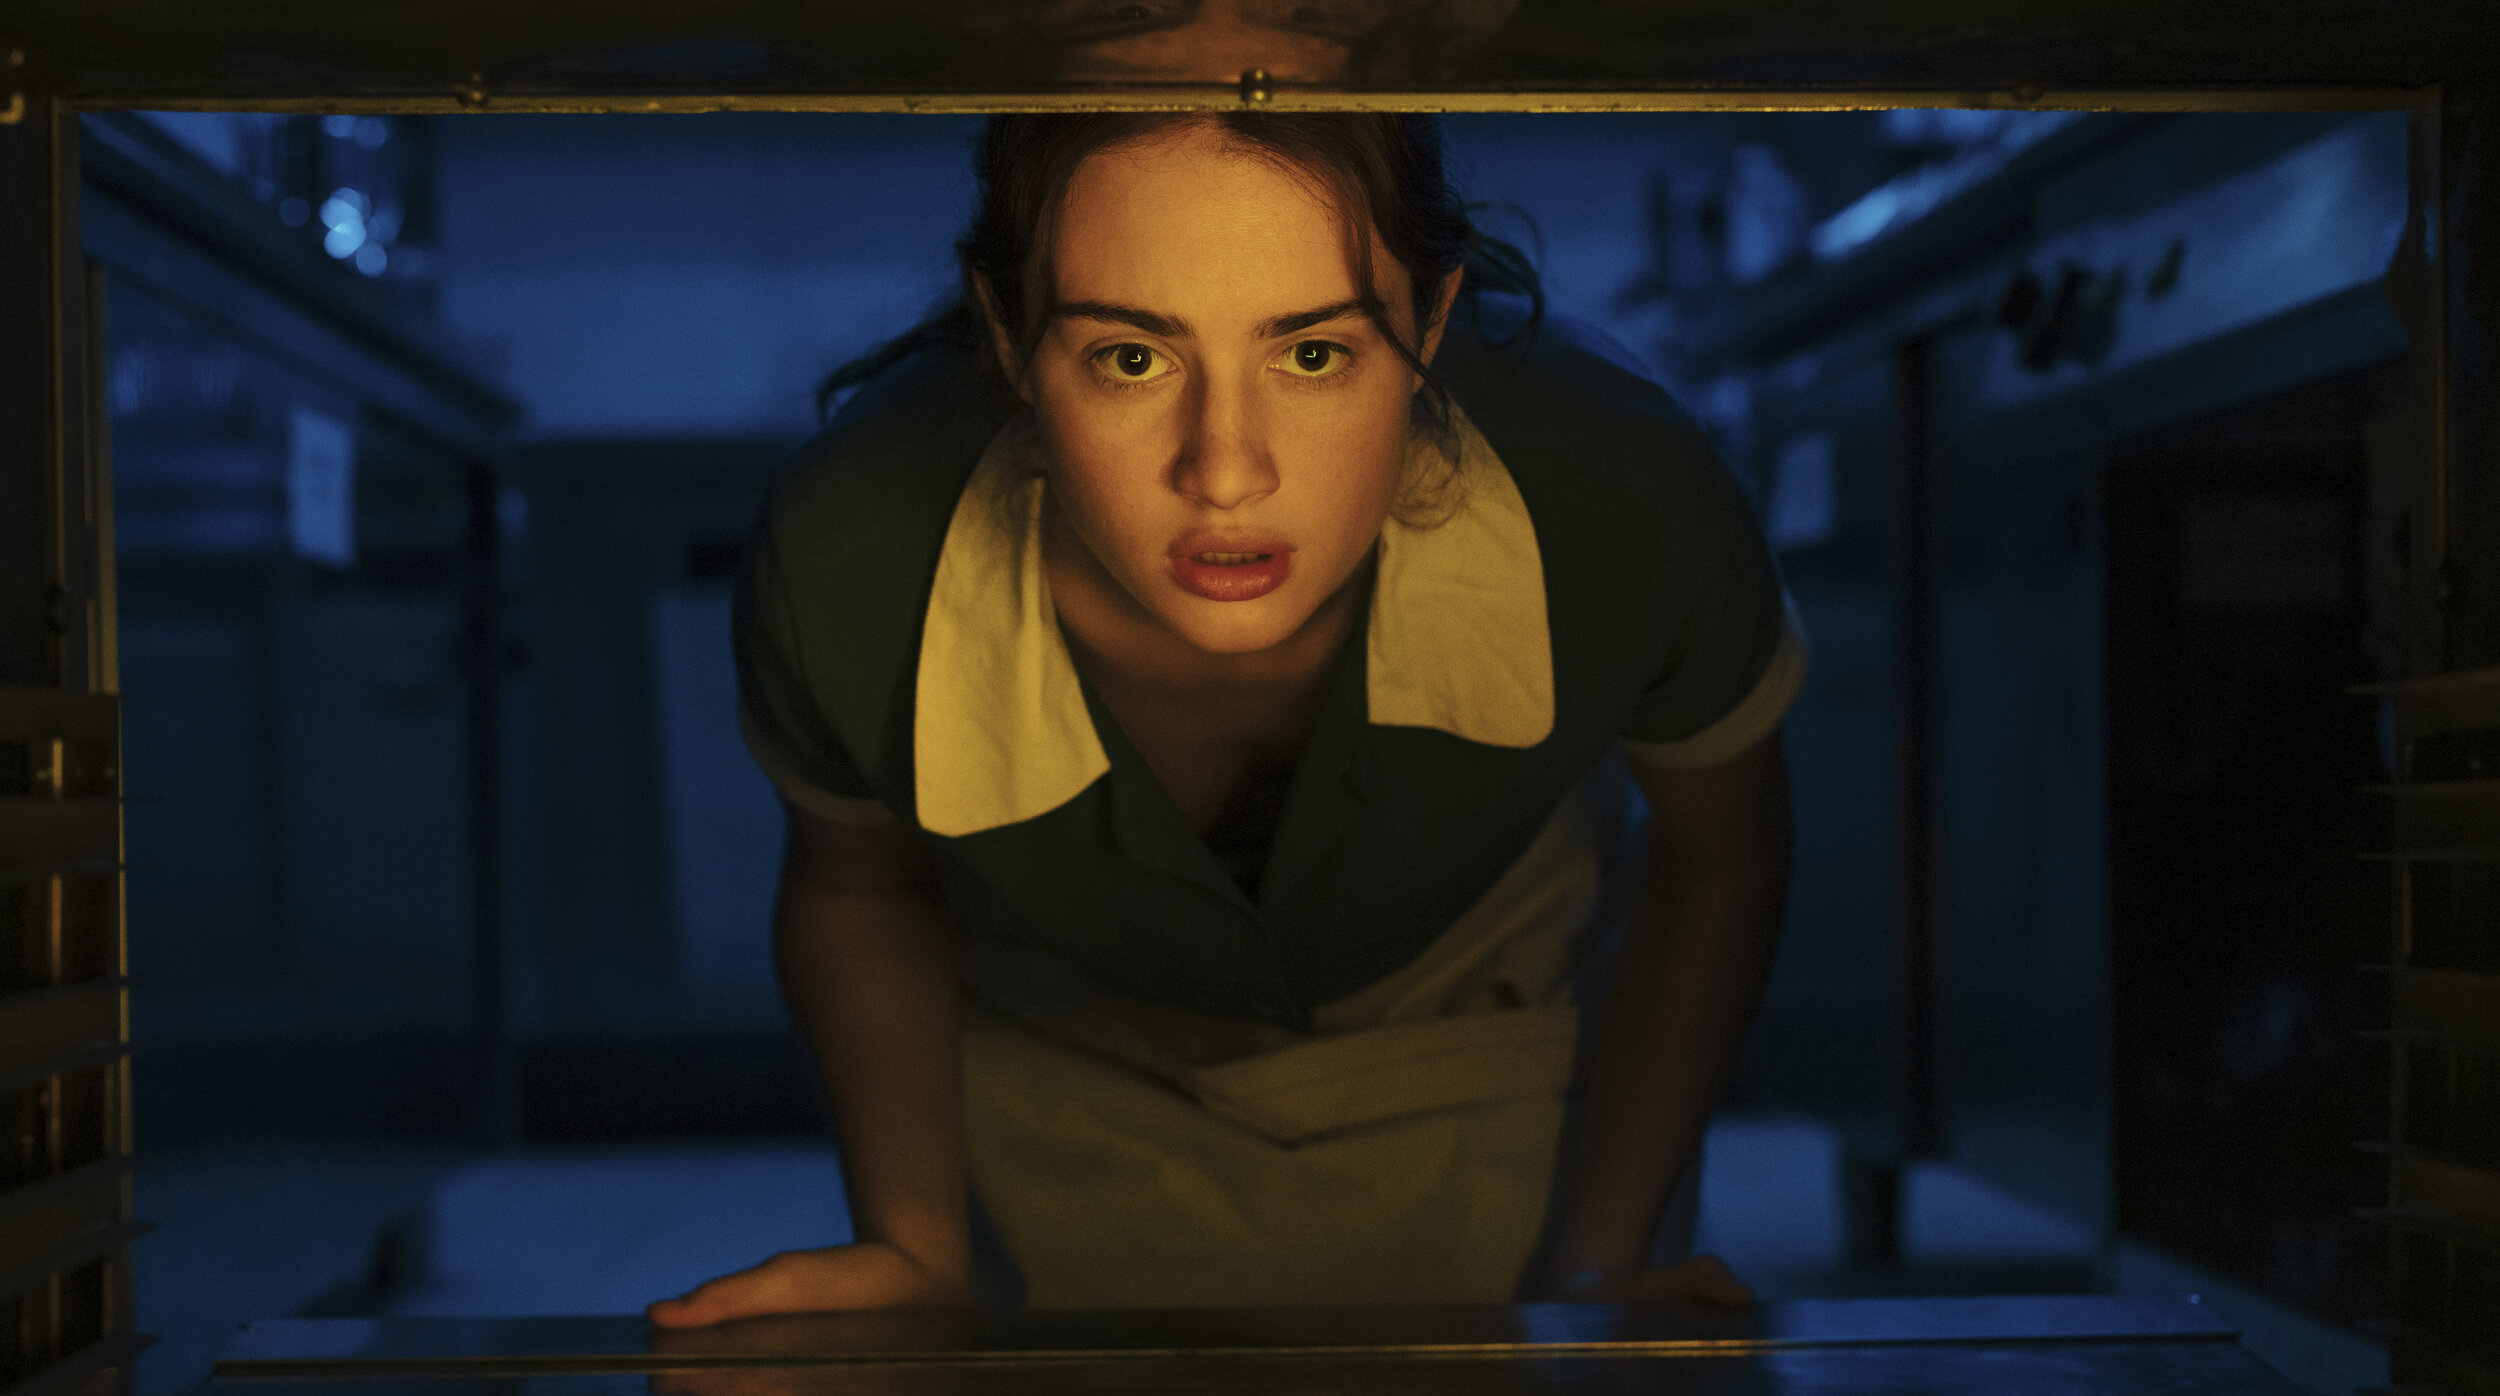 Grace Van Patten, dressed as a mid-century servant at a wedding venue, crawls through an oven and into a fantasy world in Mayday